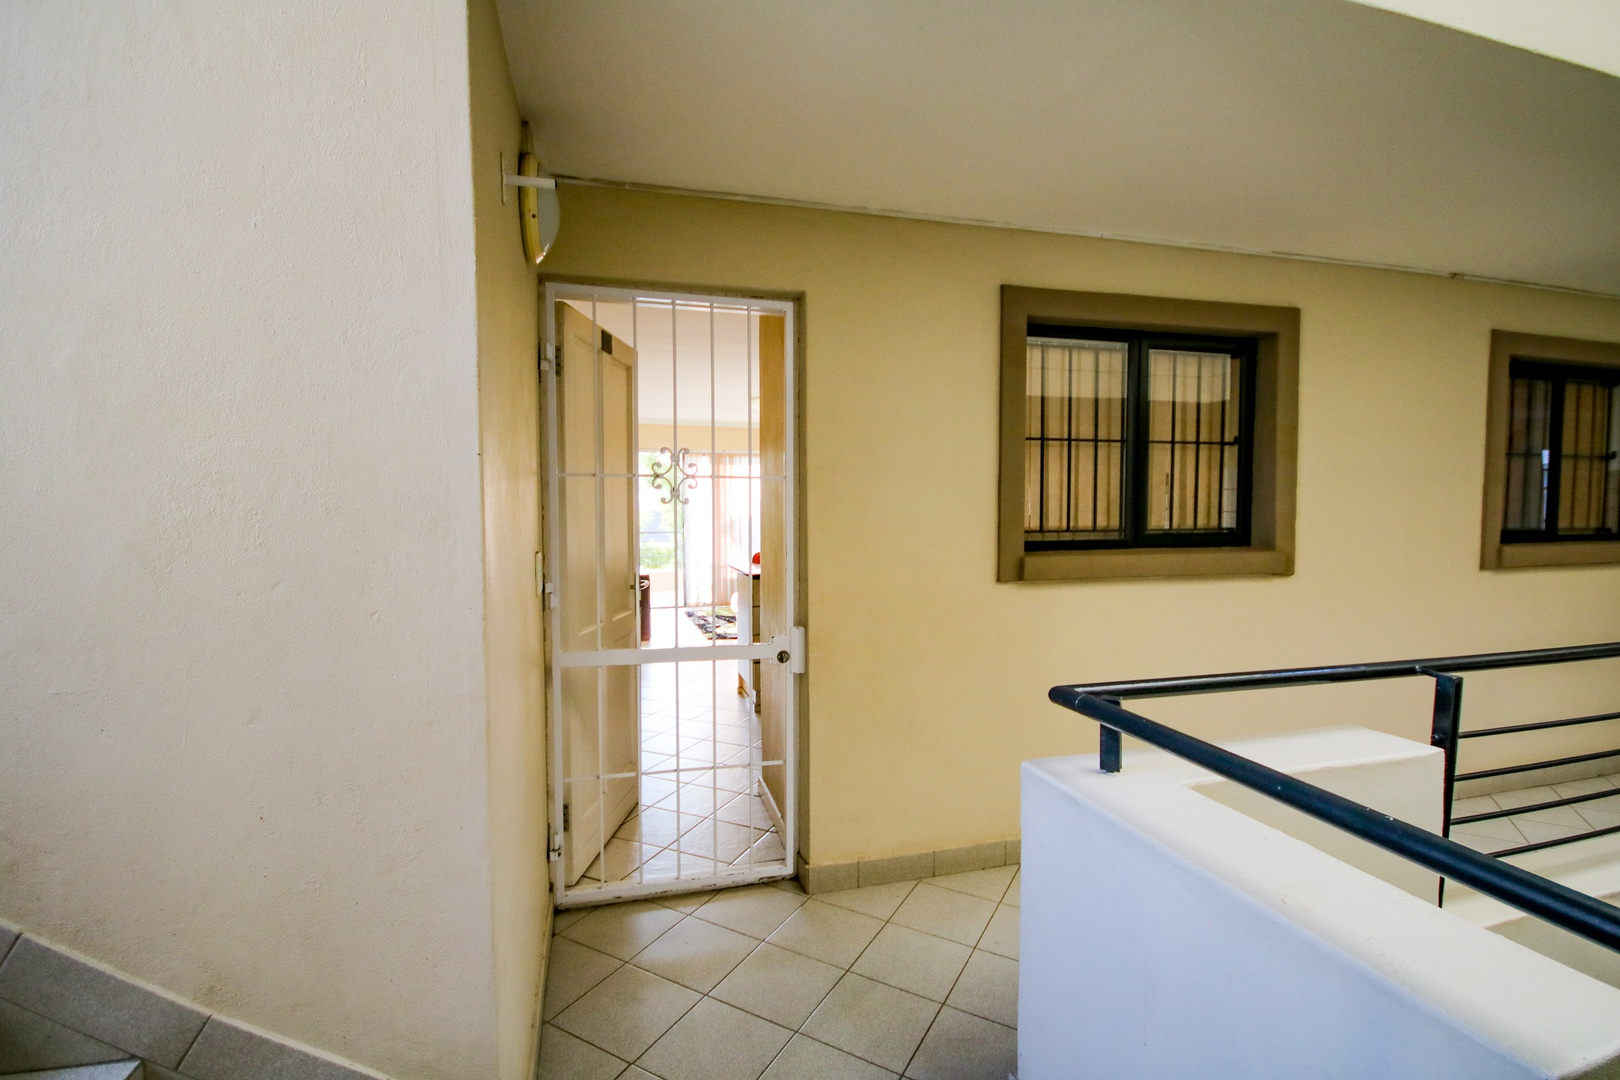 Apartment in Somerset West - Entrance.jpg